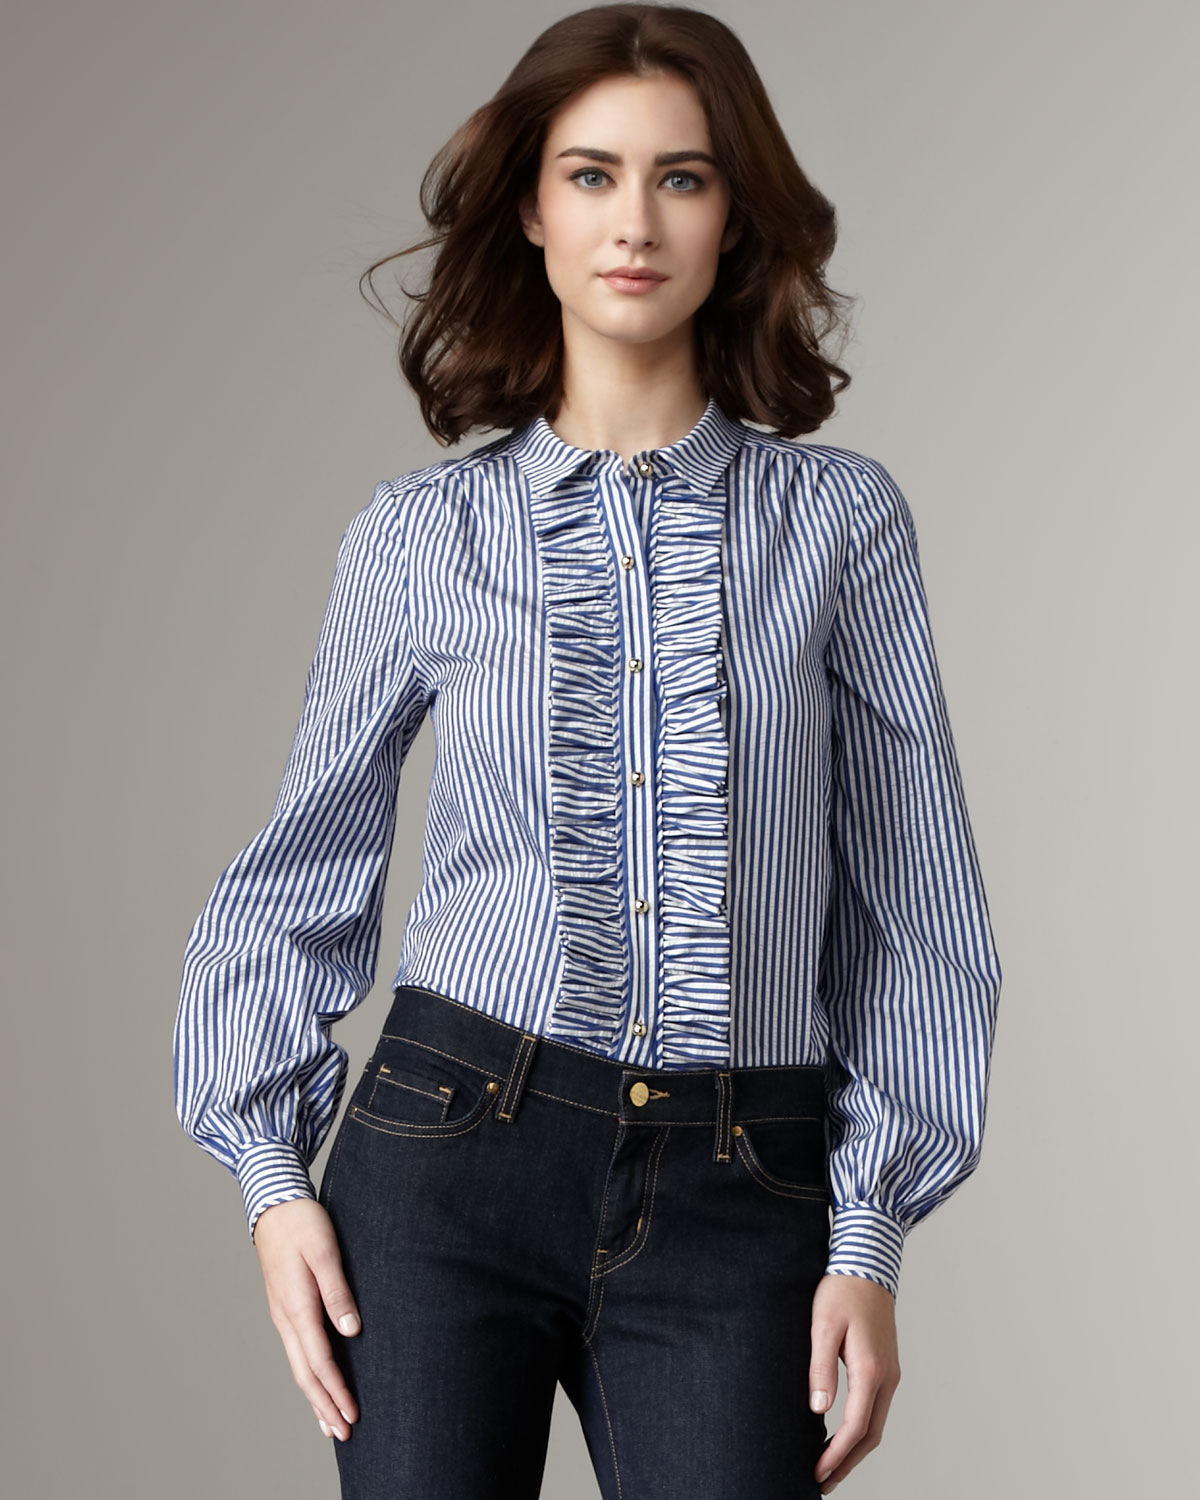 Kate spade new york Tiff Ruffle-front Blouse in Blue | Lyst